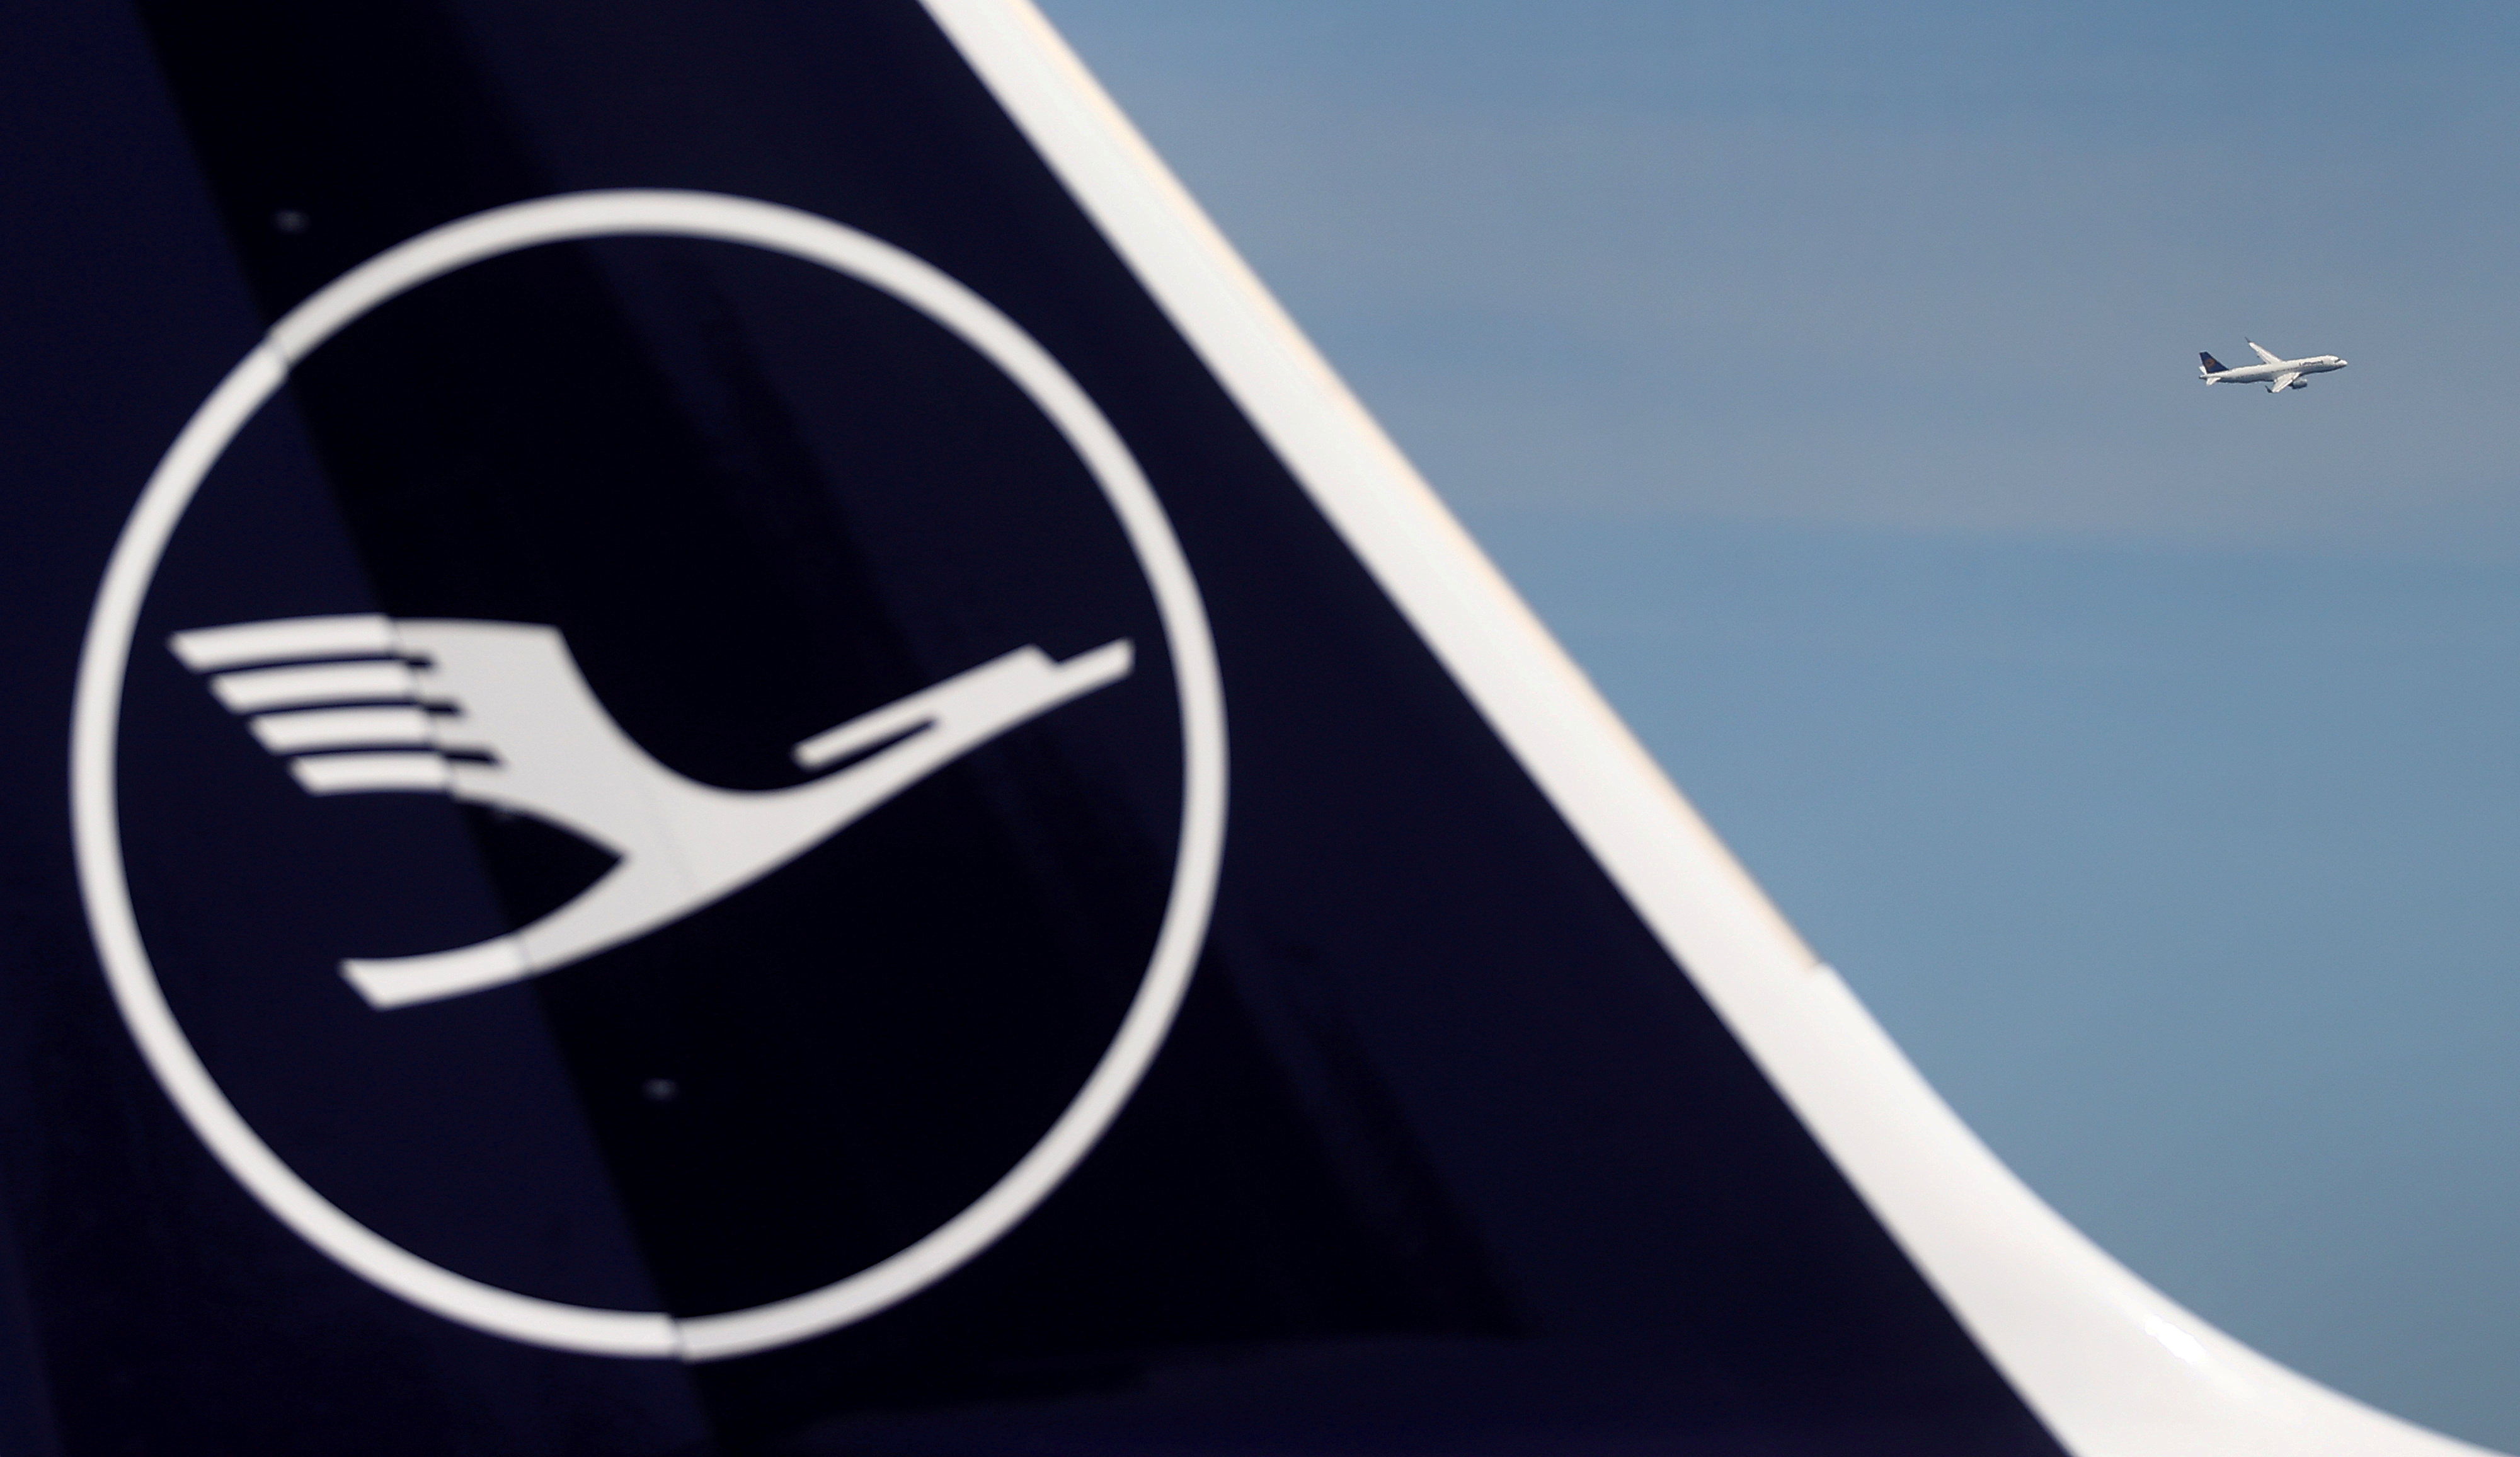 A Lufthansa plane takes off behind a grounded jet at the airport as the spread of coronavirus disease (COVID-19) continues in Frankfurt, Germany, June 2, 2020. REUTERS/Kai Pfaffenbach